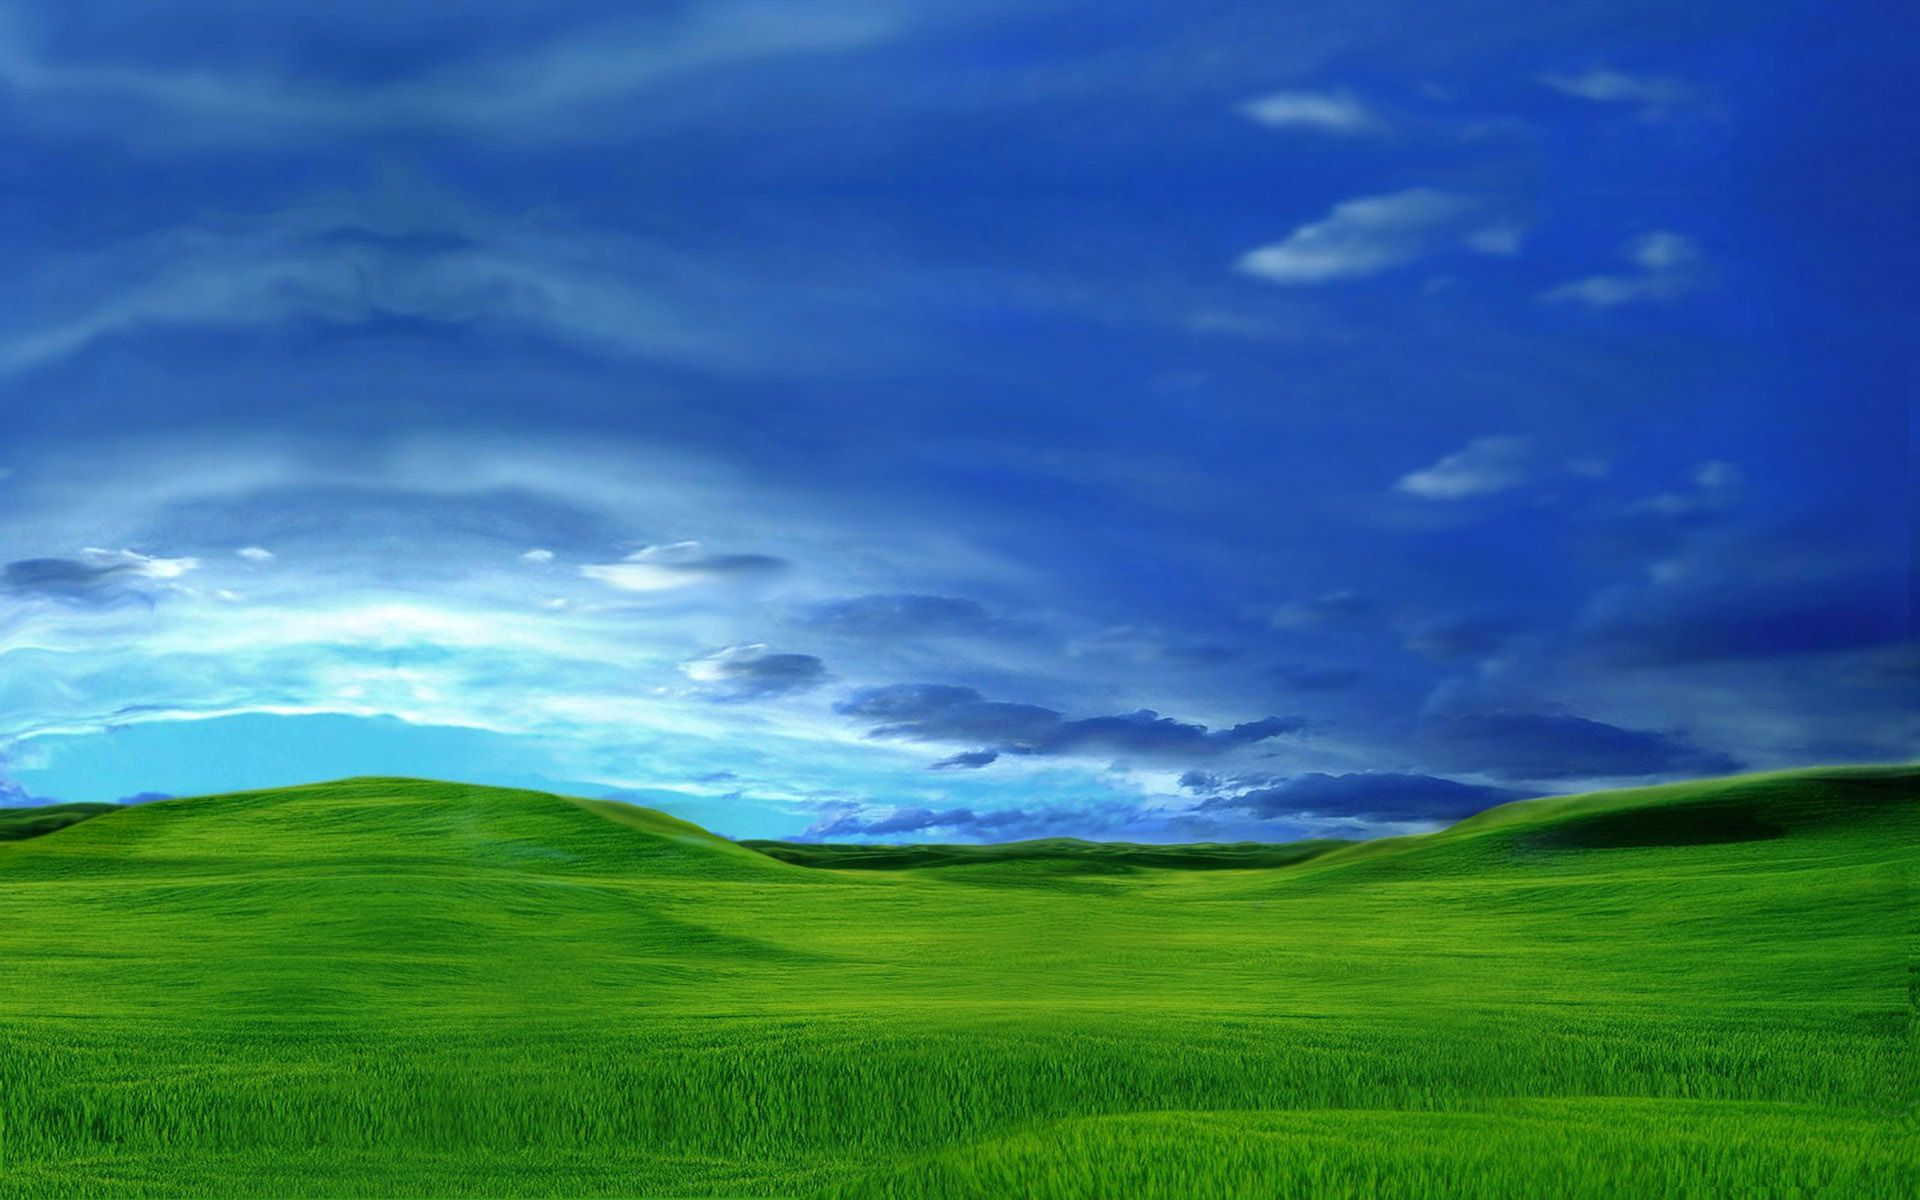 Windows Xp Desktop Wallpapers Top Free Windows Xp Desktop